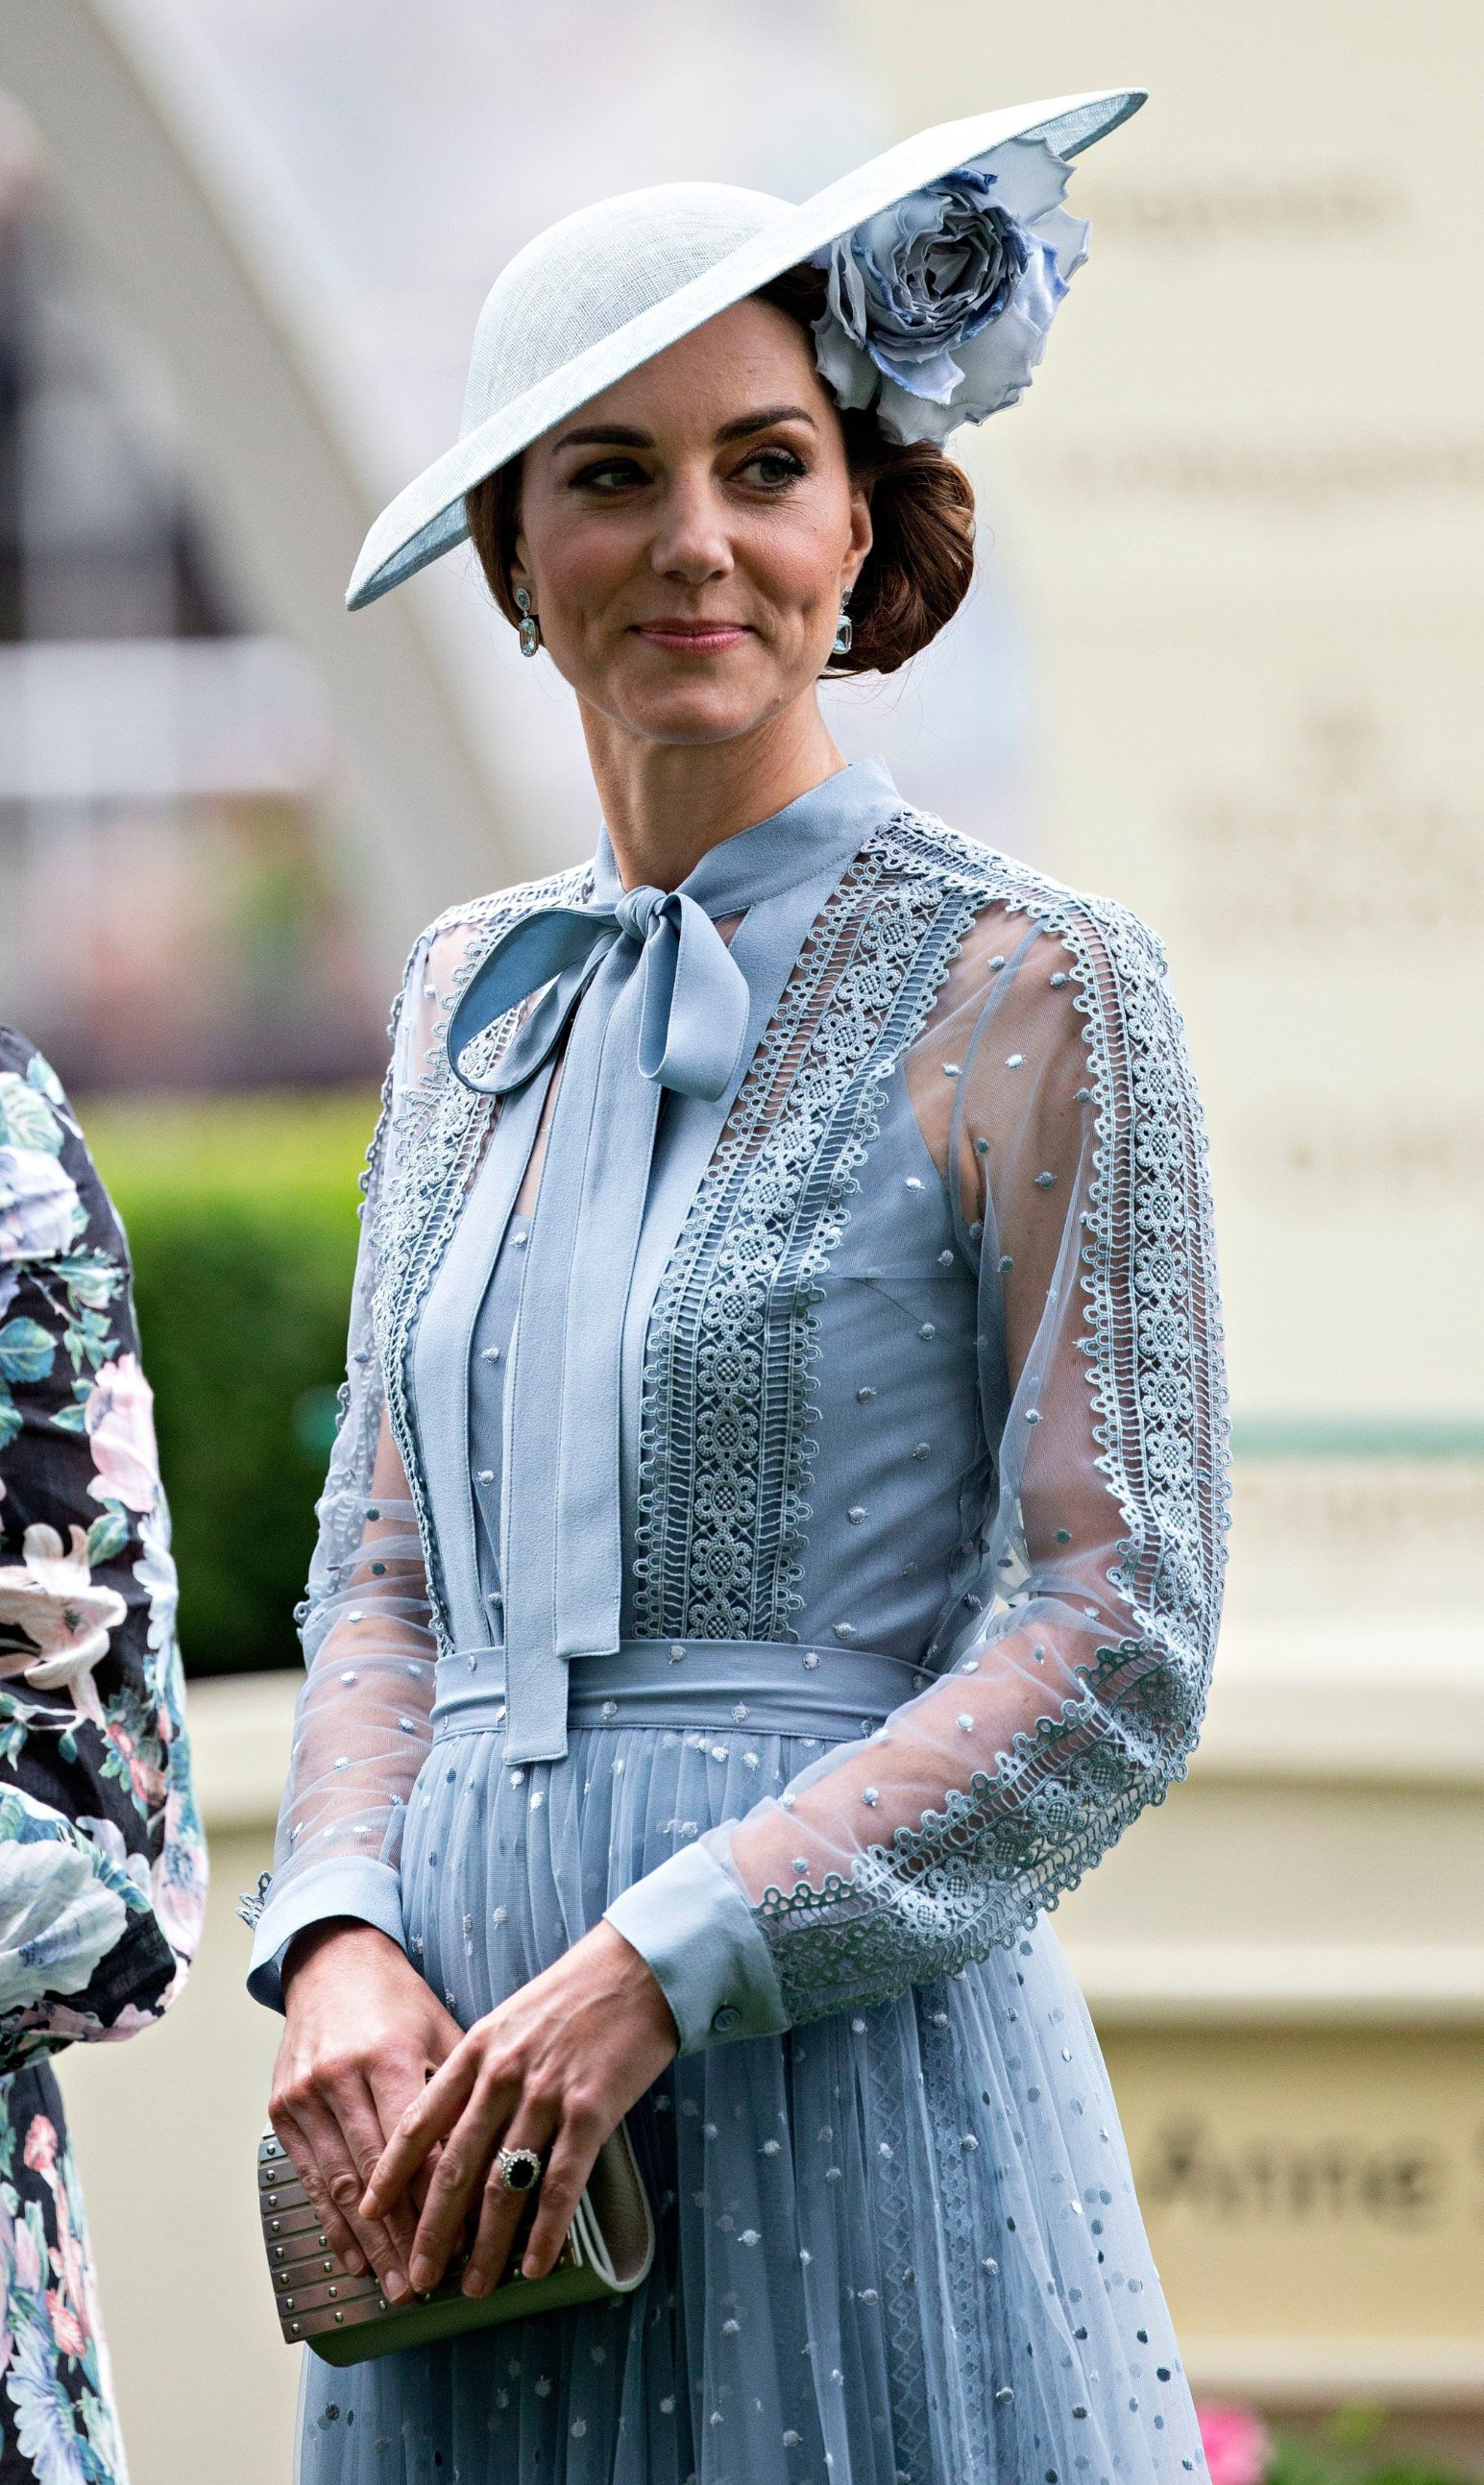 Catherine Duchess of Cambridge. Royal Ascot, Day 1, UK - 18 Jun 2019, Image: 449120593, License: Rights-managed, Restrictions: , Model Release: no, Credit line: Profimedia, TEMP Rex Features